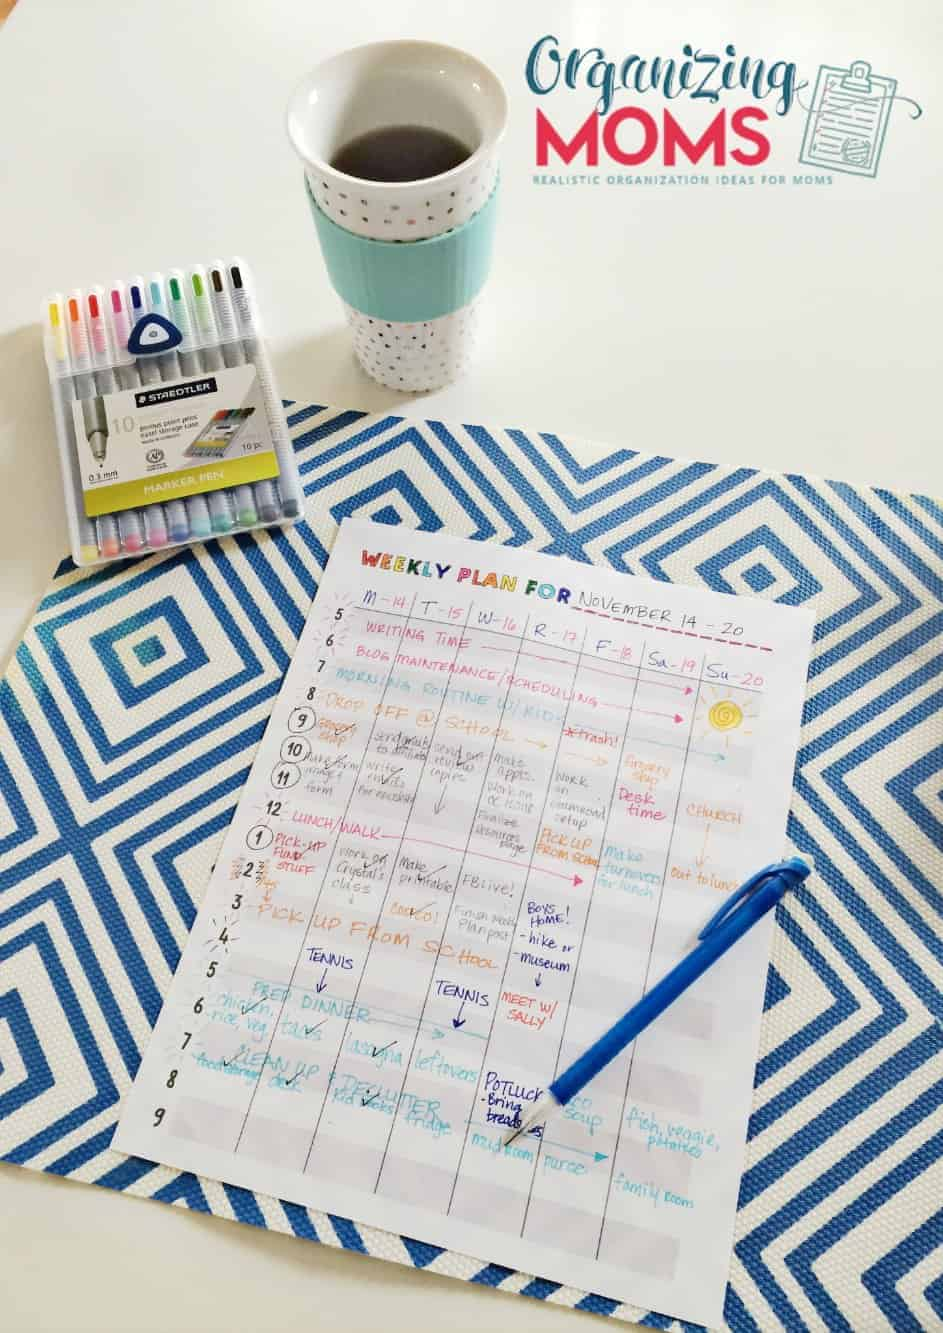 Take Charge of Your Time with a Weekly Plan